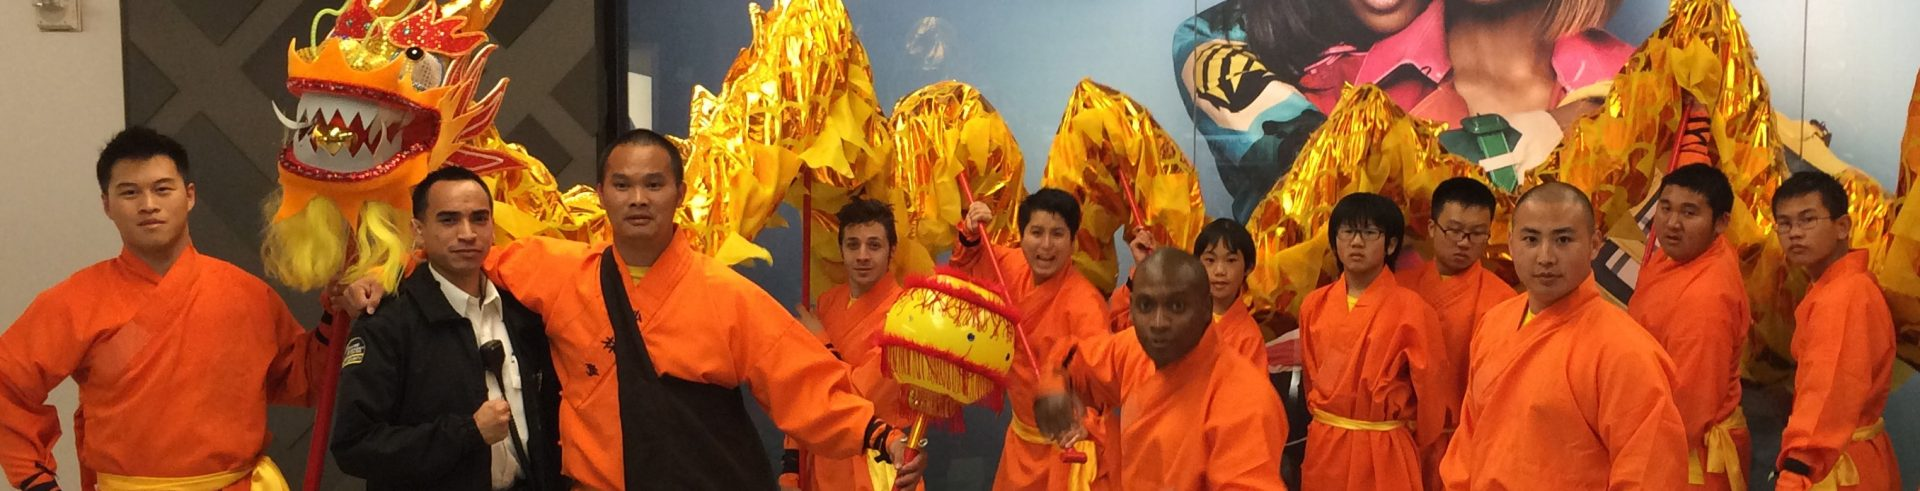 Shaolin Entertainment Group, Inc.,